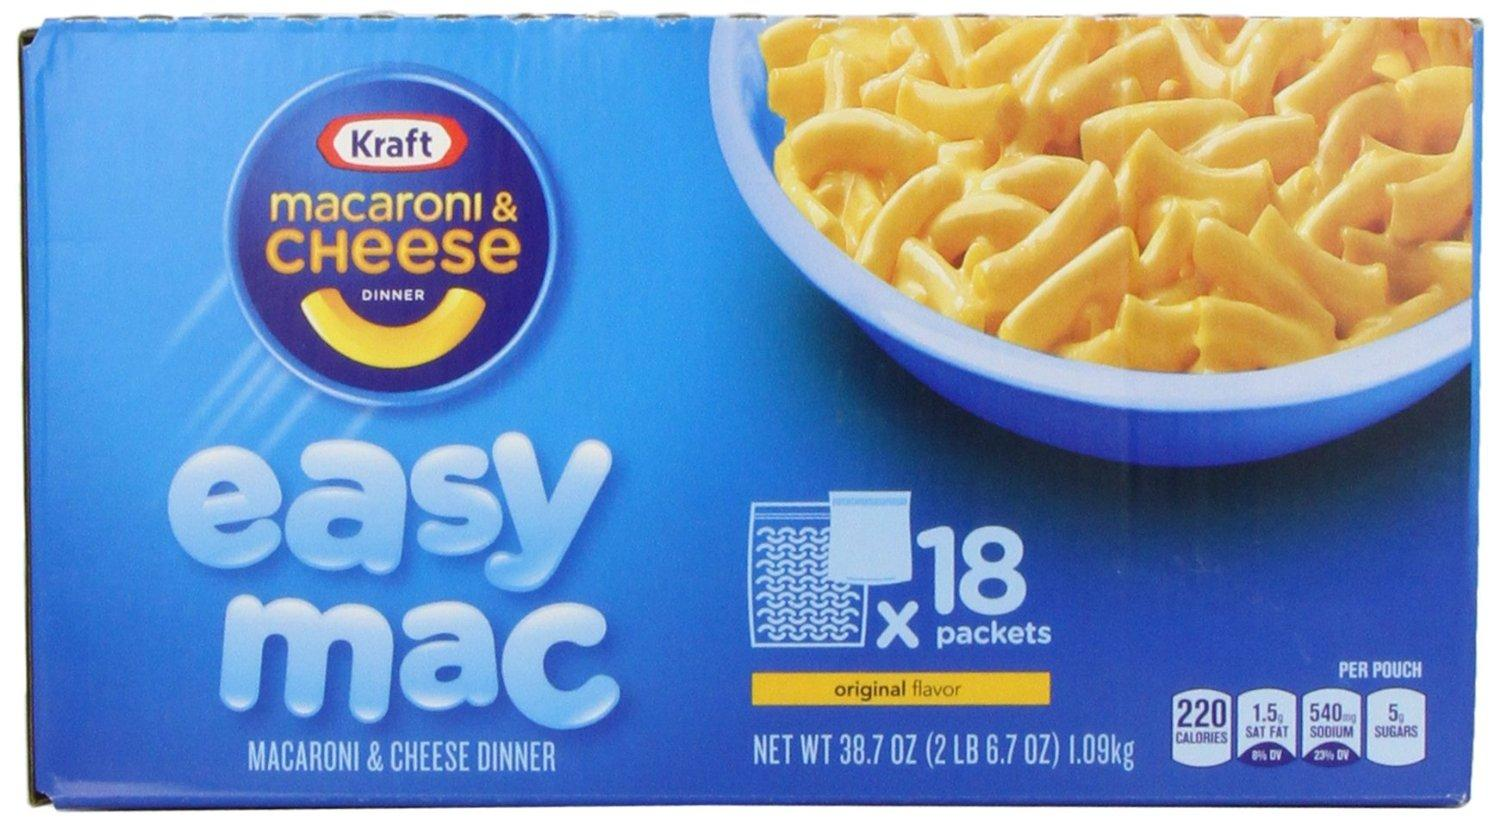 $6.57 Kraft Easy Mac Original Macaroni and Cheese Dinner 18 Microwaveable Single Serve Packs